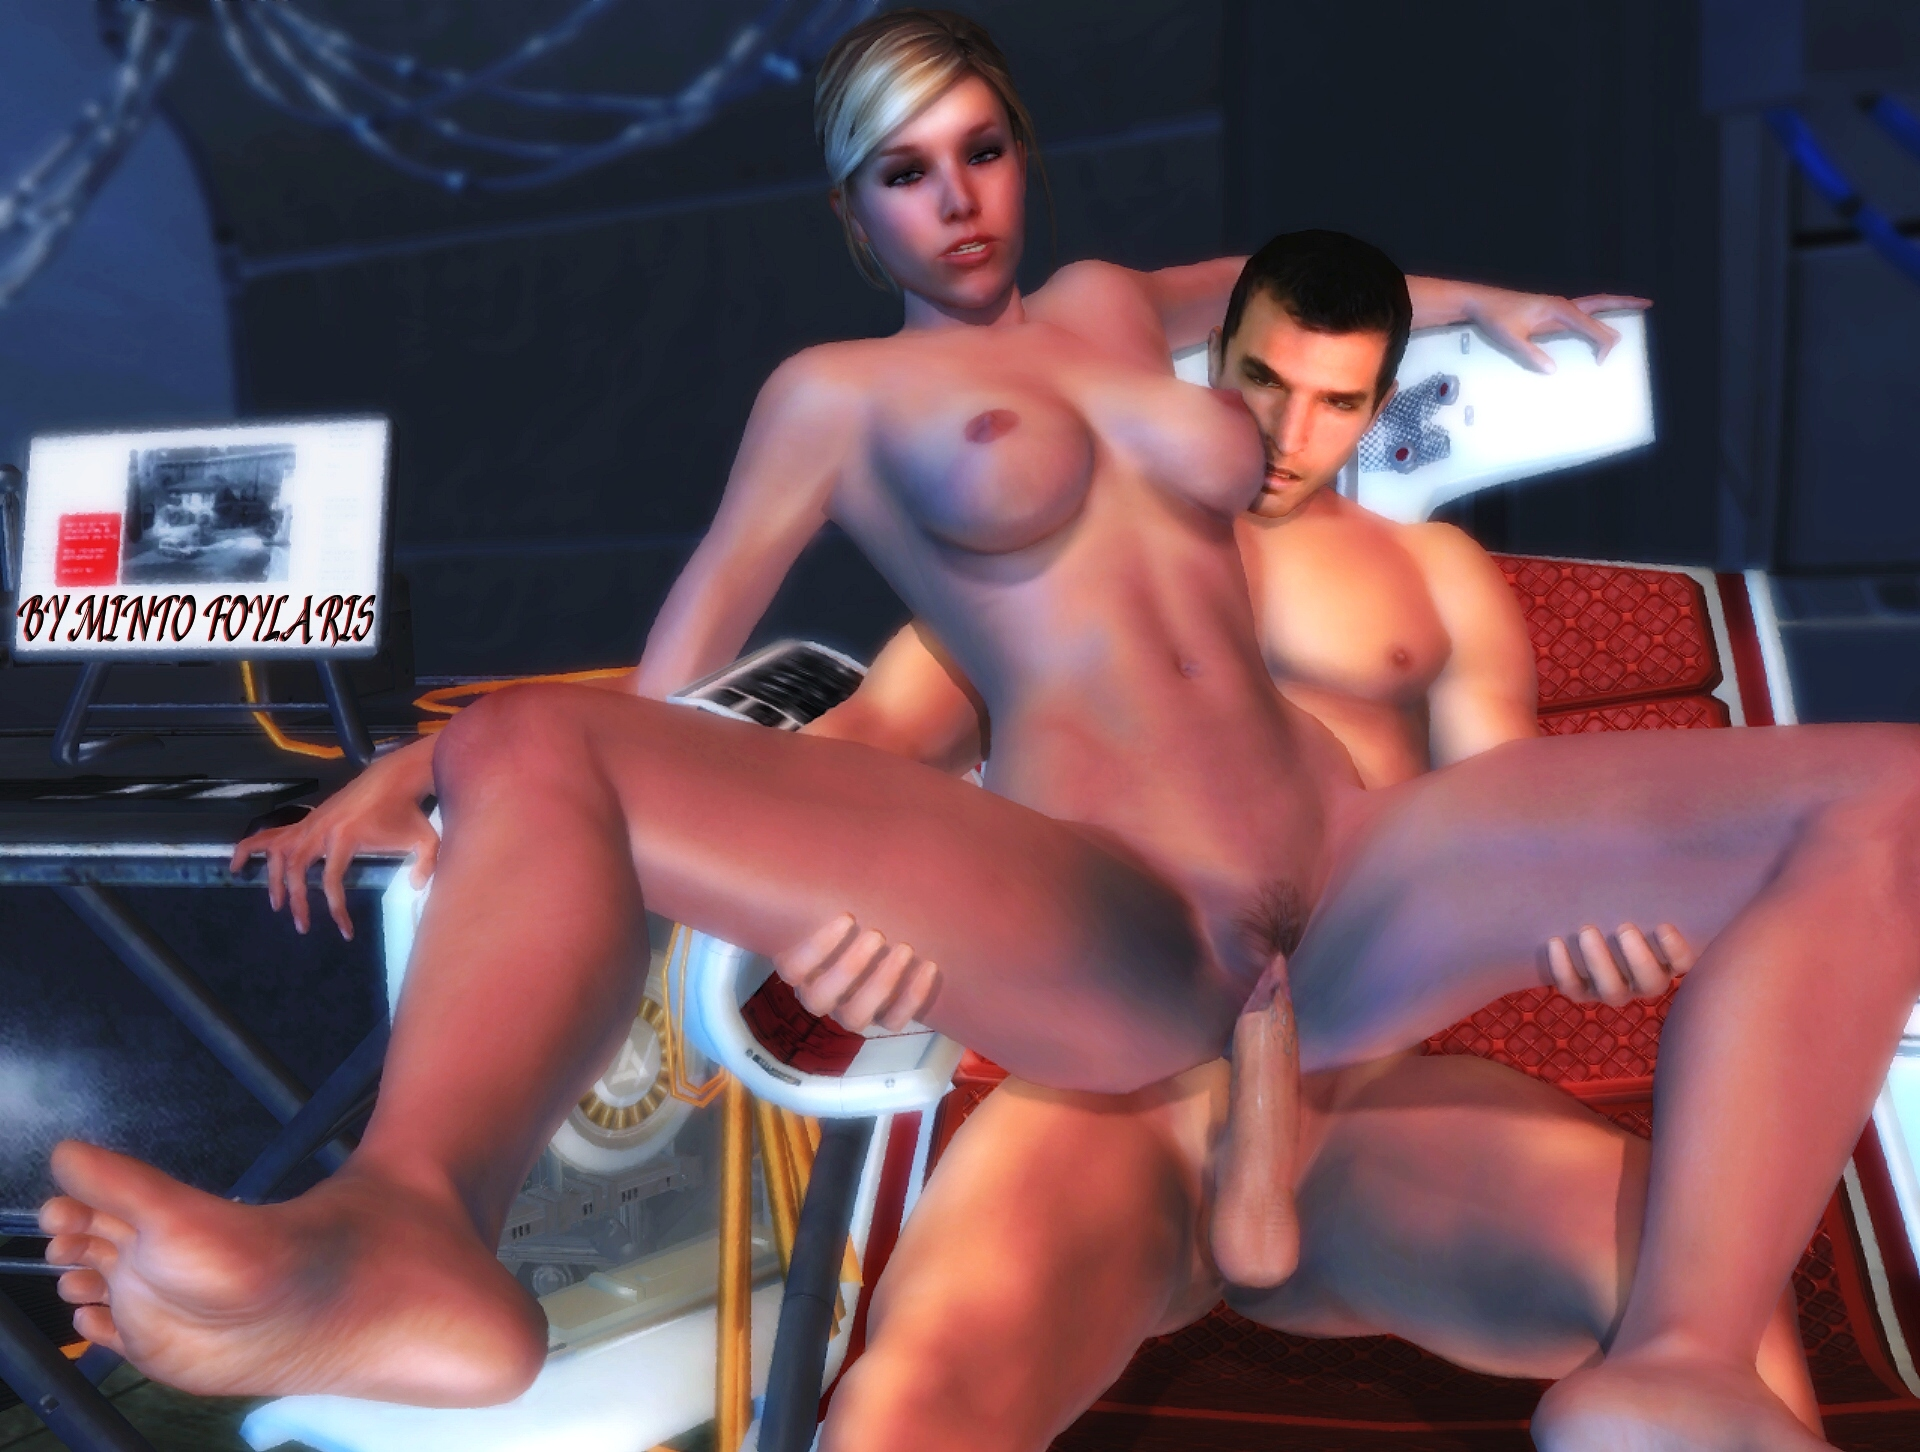 Assasins creed 3 nude girls mod pornos galleries